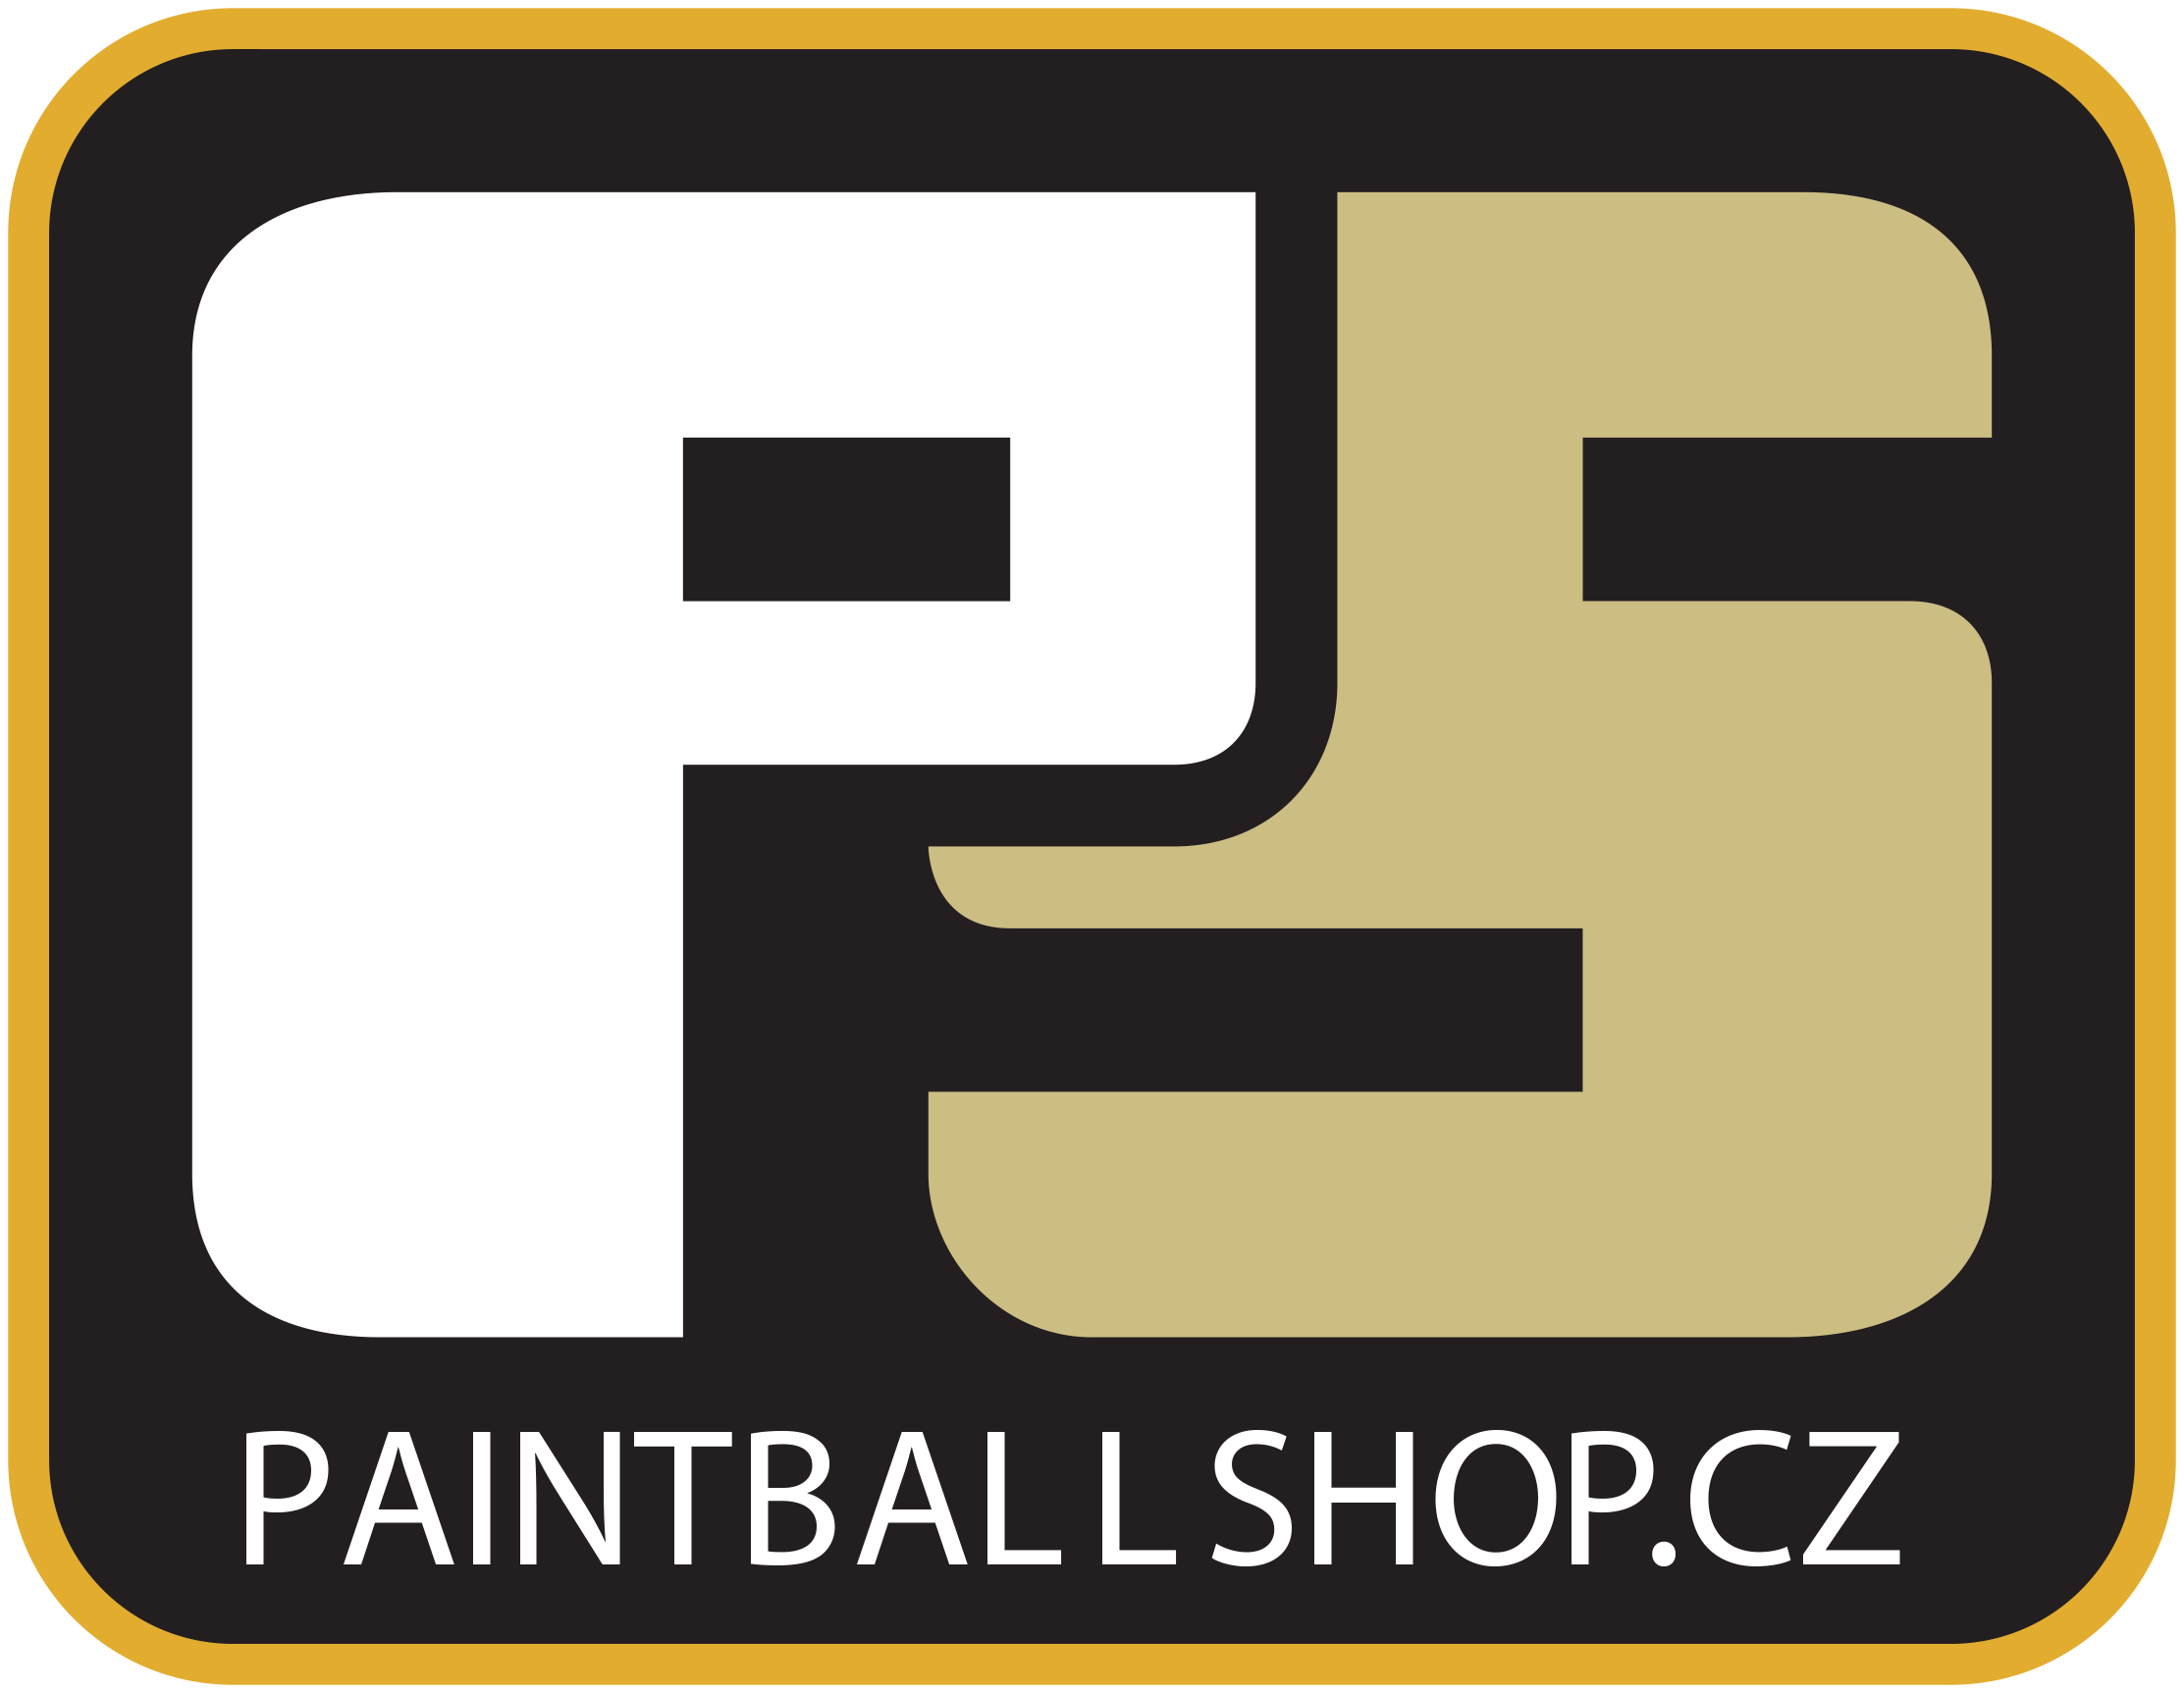 paintball shop